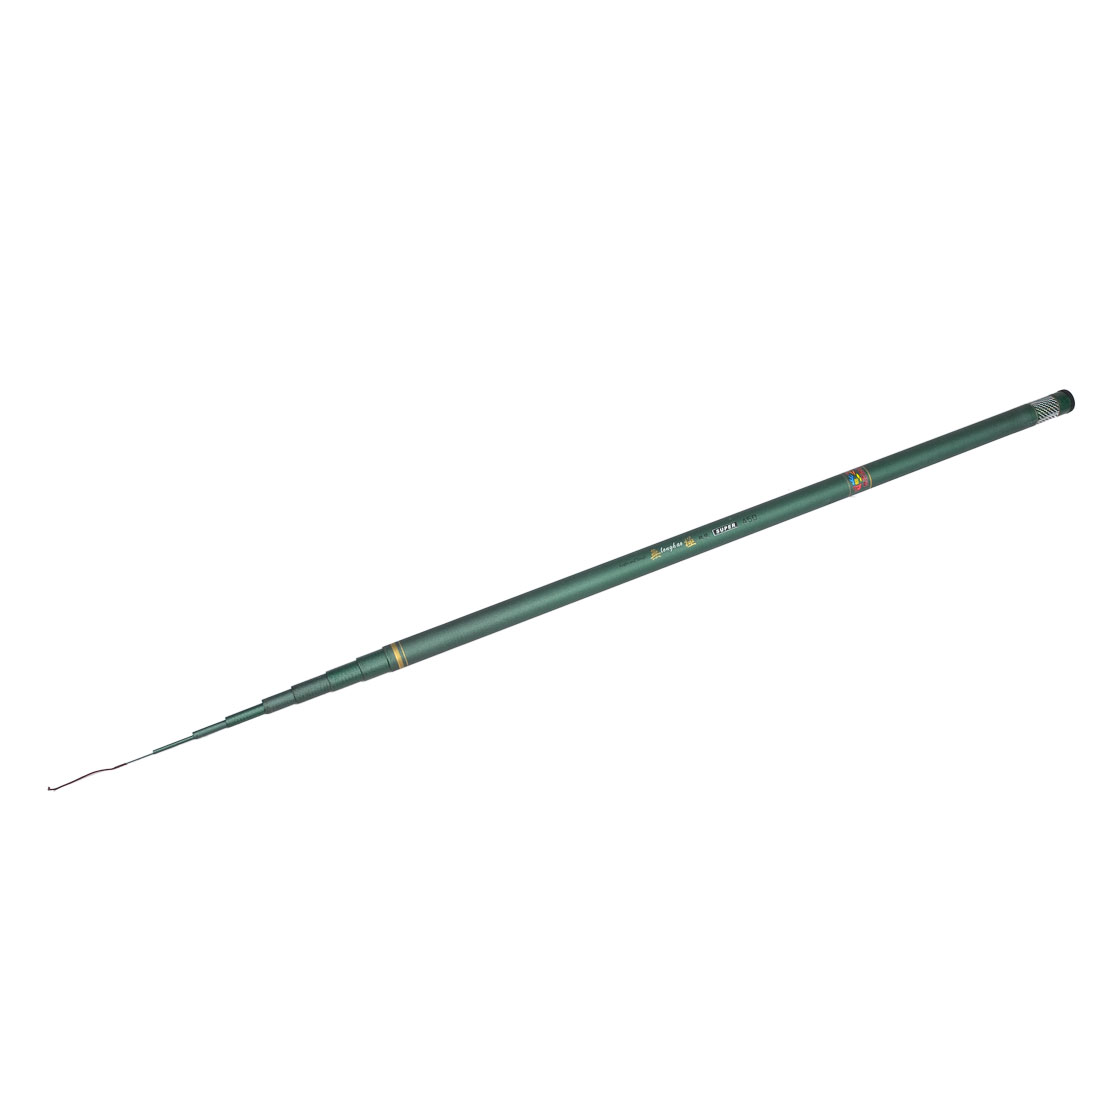 Green 2.6M 8 Section Telescopic Carbon Fishing Pole Rod